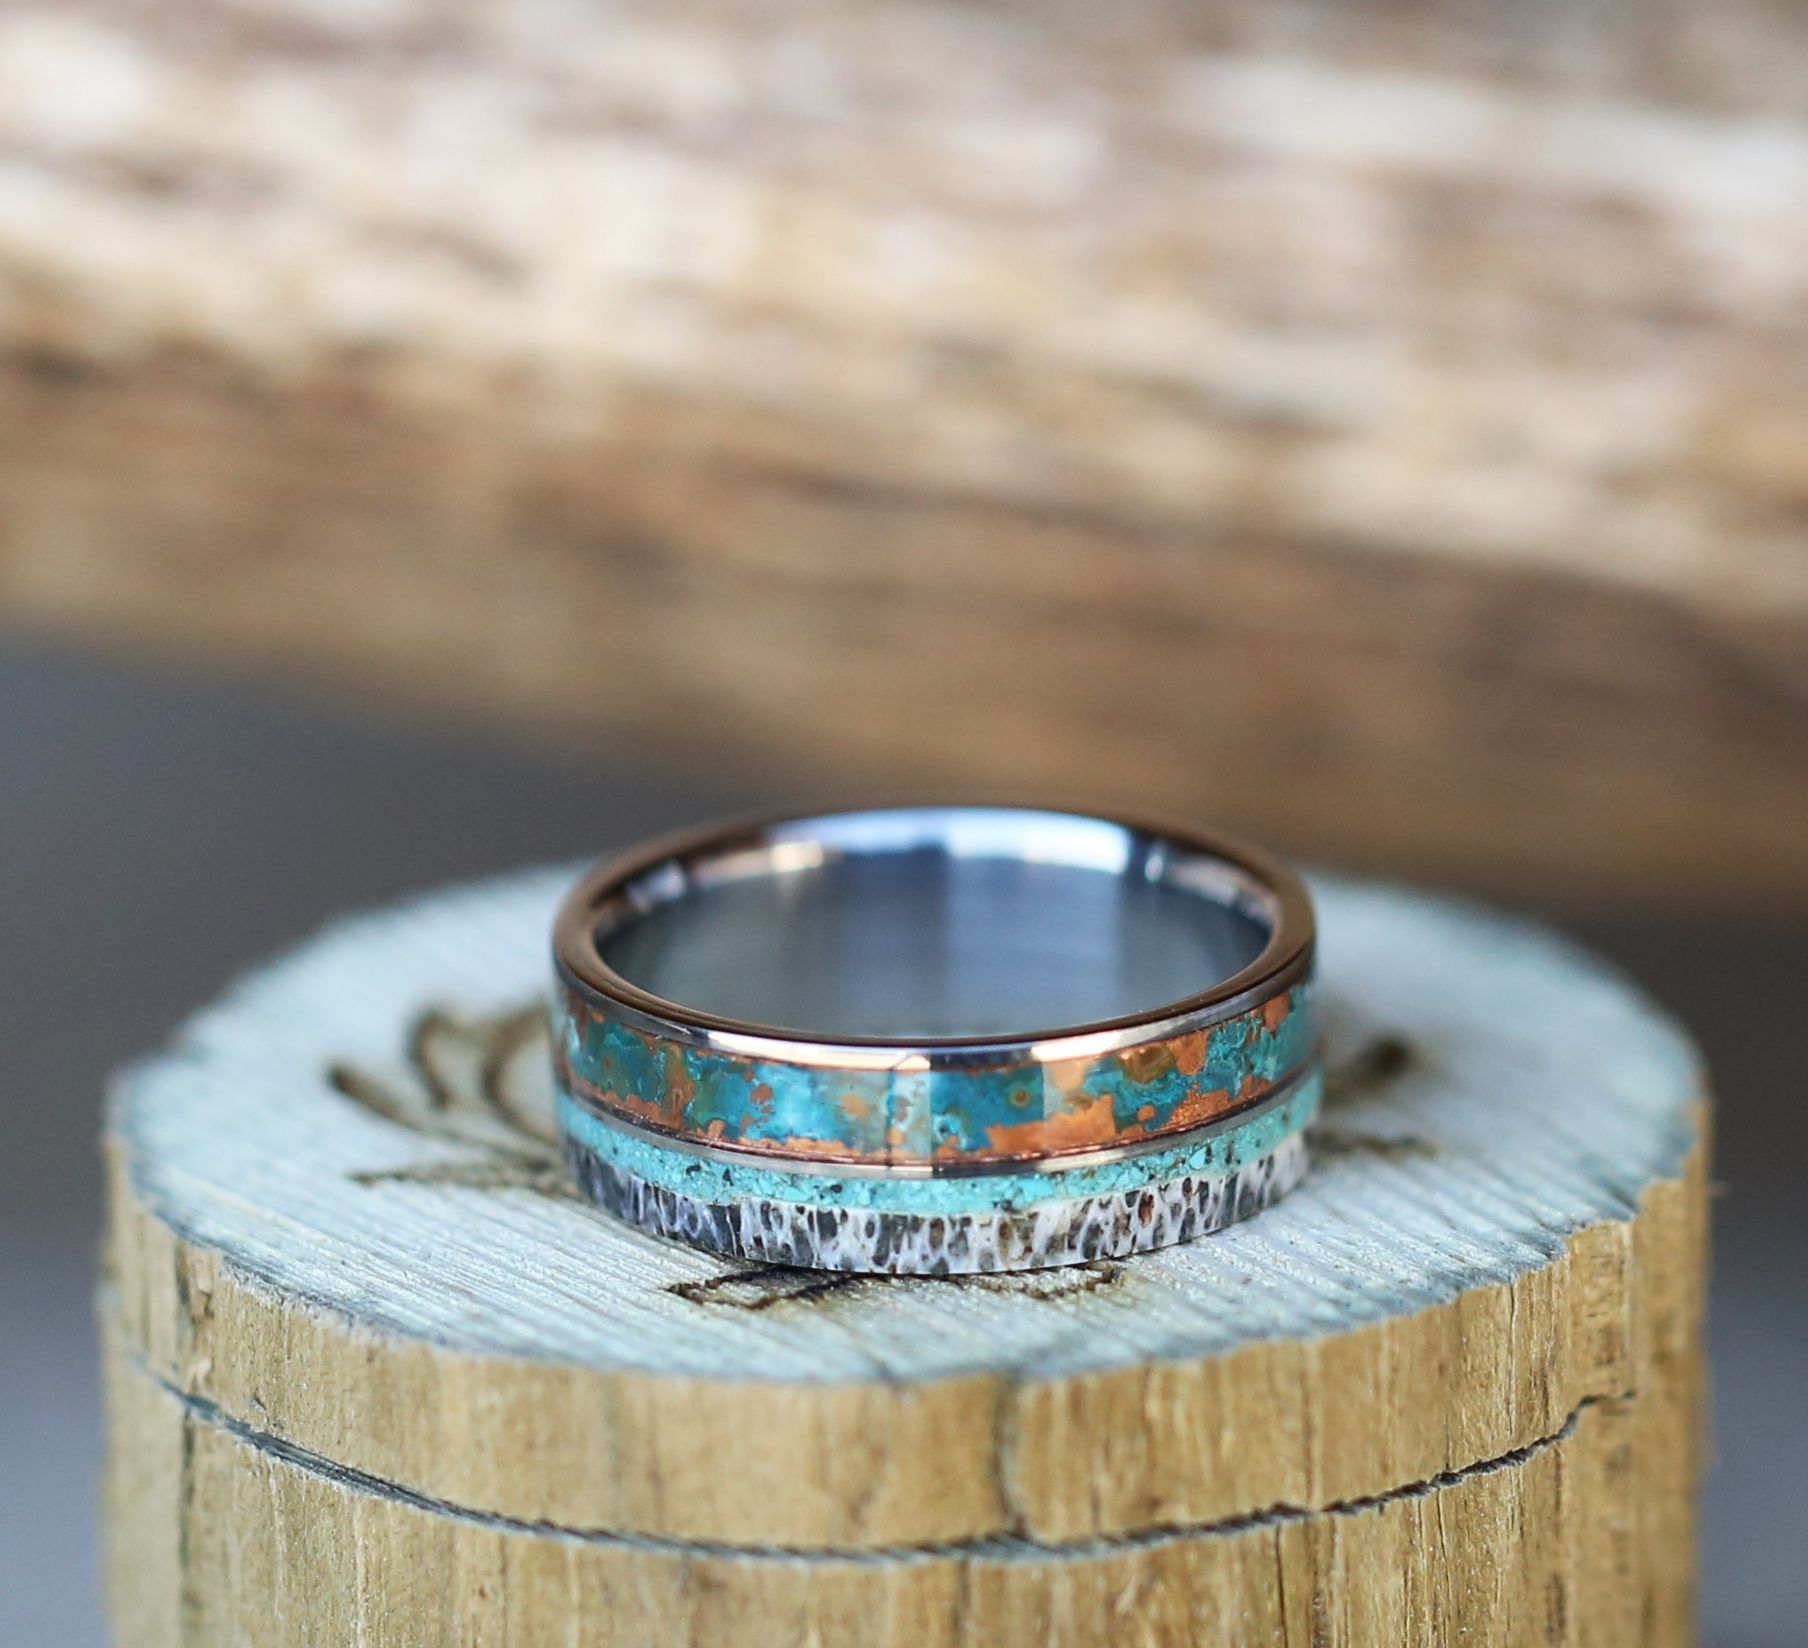 Staghead Designs Wedding Rings Made From Antler Gold Patina Copper Turquoise Carbon Fiber Leather Titanium Silver Jade Wood Men's And Woman's: Antler Wedding Ring Turquoise At Websimilar.org